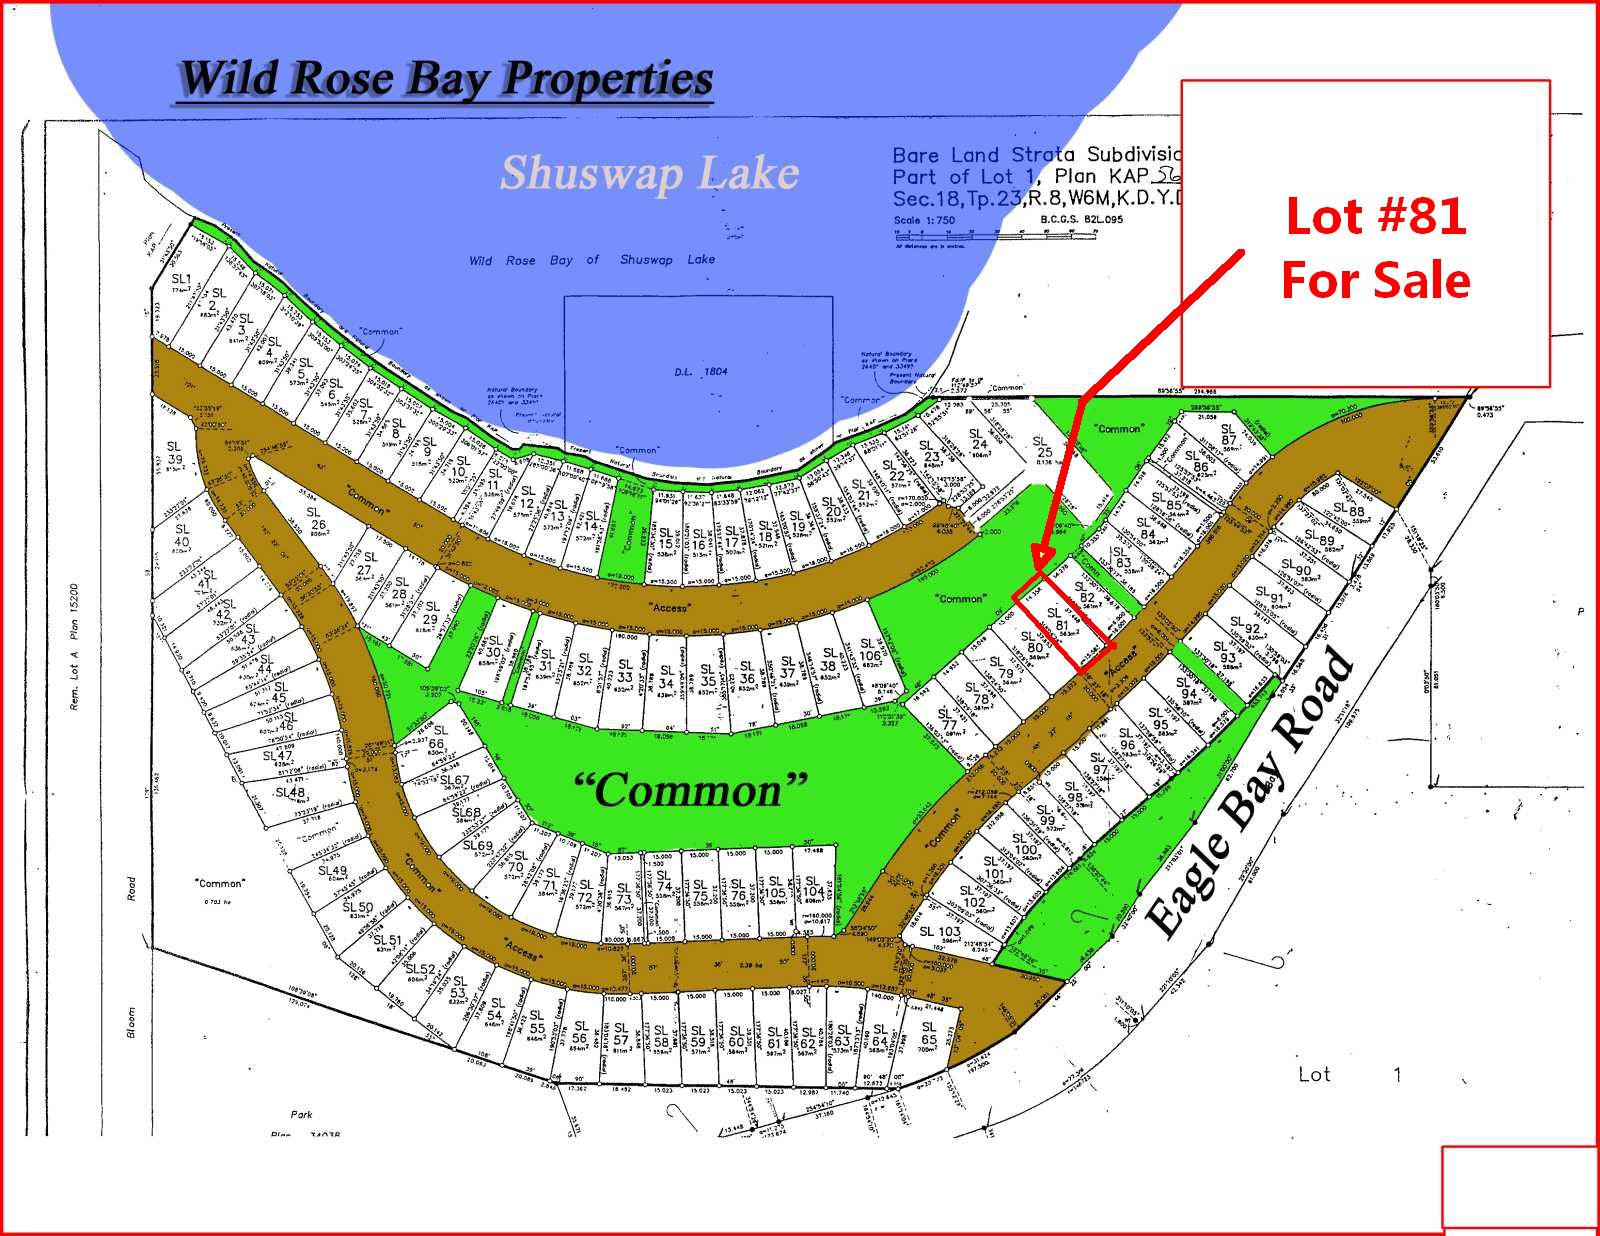 Main Photo: 81 6421 Eagle Bay Road in Eagle Bay: WILD ROSE BAY Vacant Land for sale (EAGLE BAY)  : MLS®# 10205572